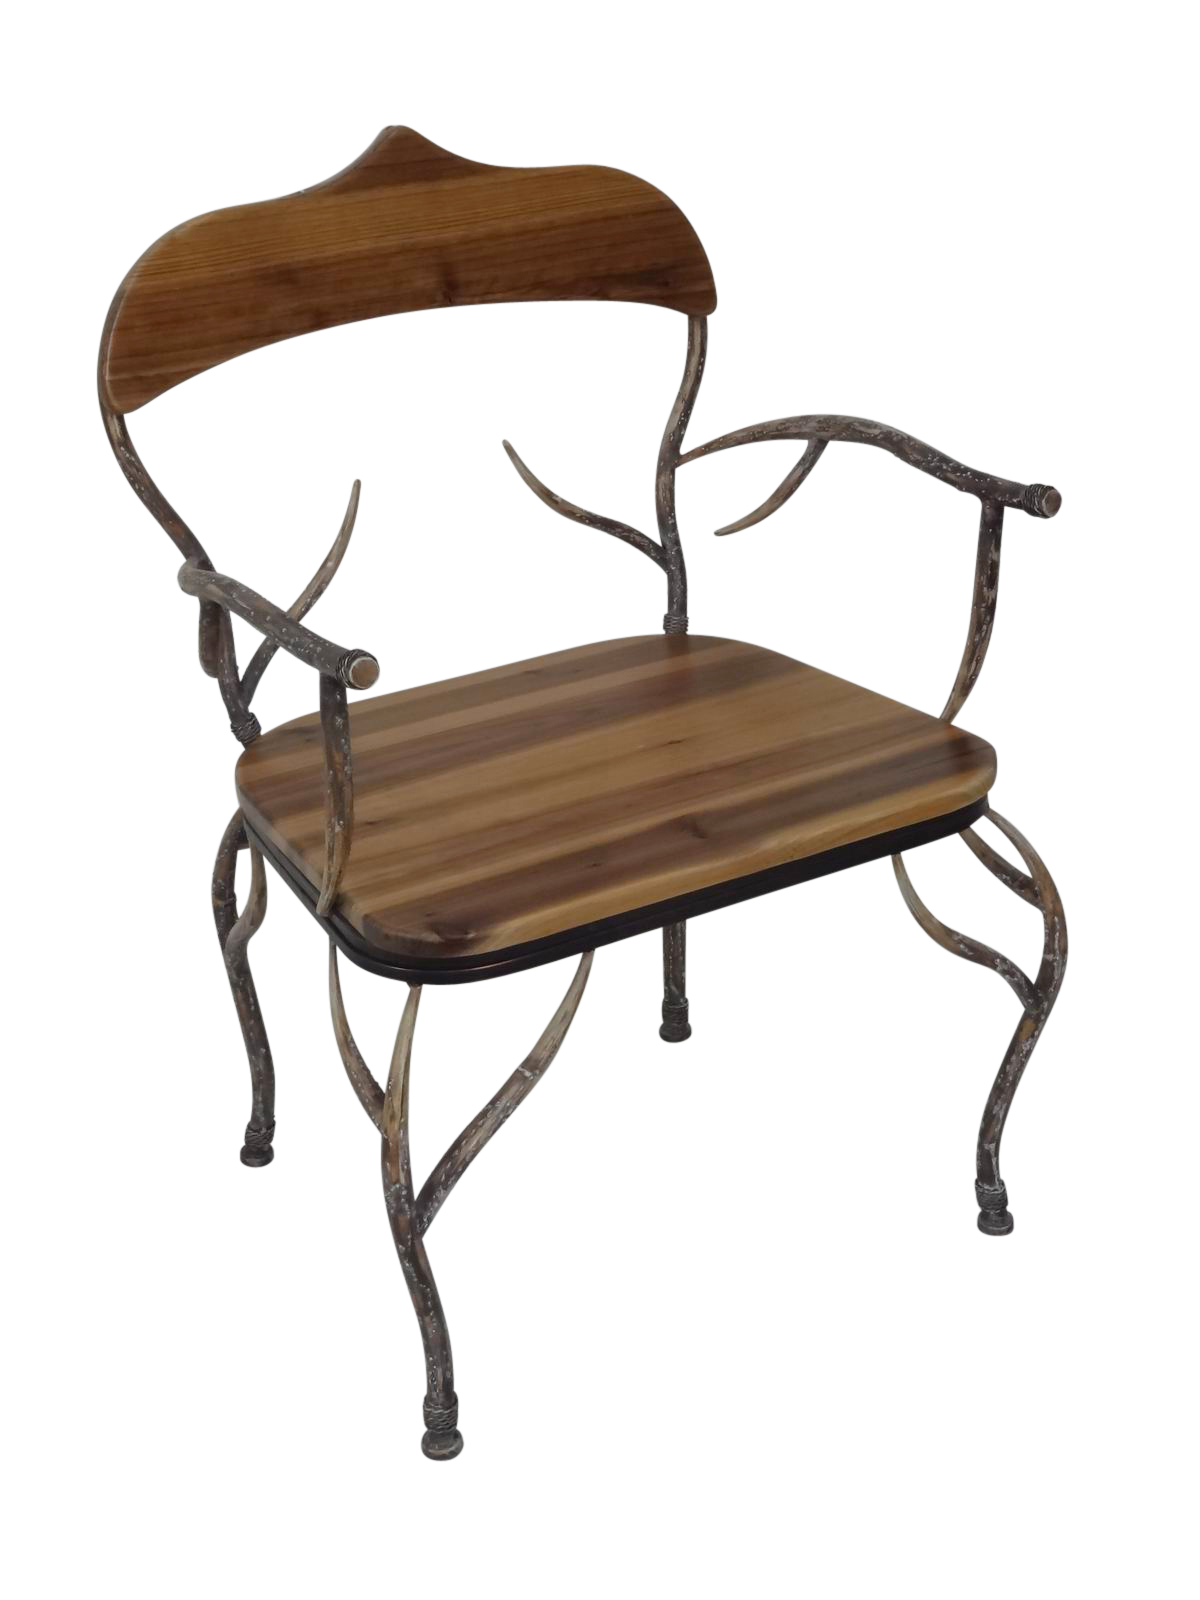 Astonishing Deer Antler All Weather Home Outdoor Patio Wooden Lounge Machost Co Dining Chair Design Ideas Machostcouk